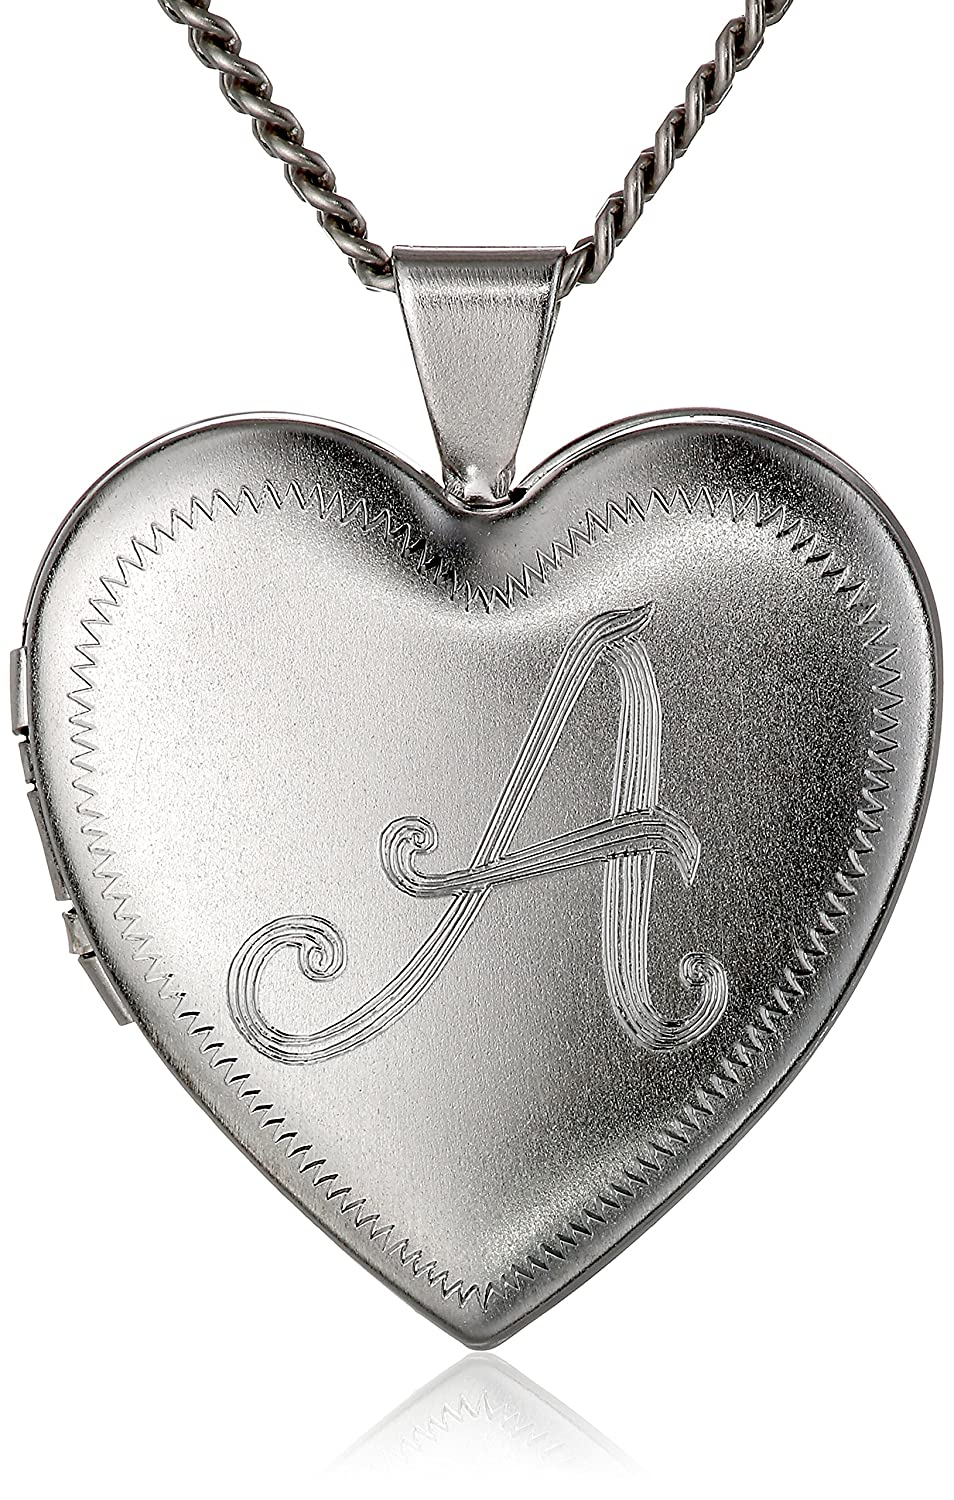 mv locket hover kay heart silver crystals lockets zm clear with sterling necklace en kaystore angel swarovski to zoom initial elements